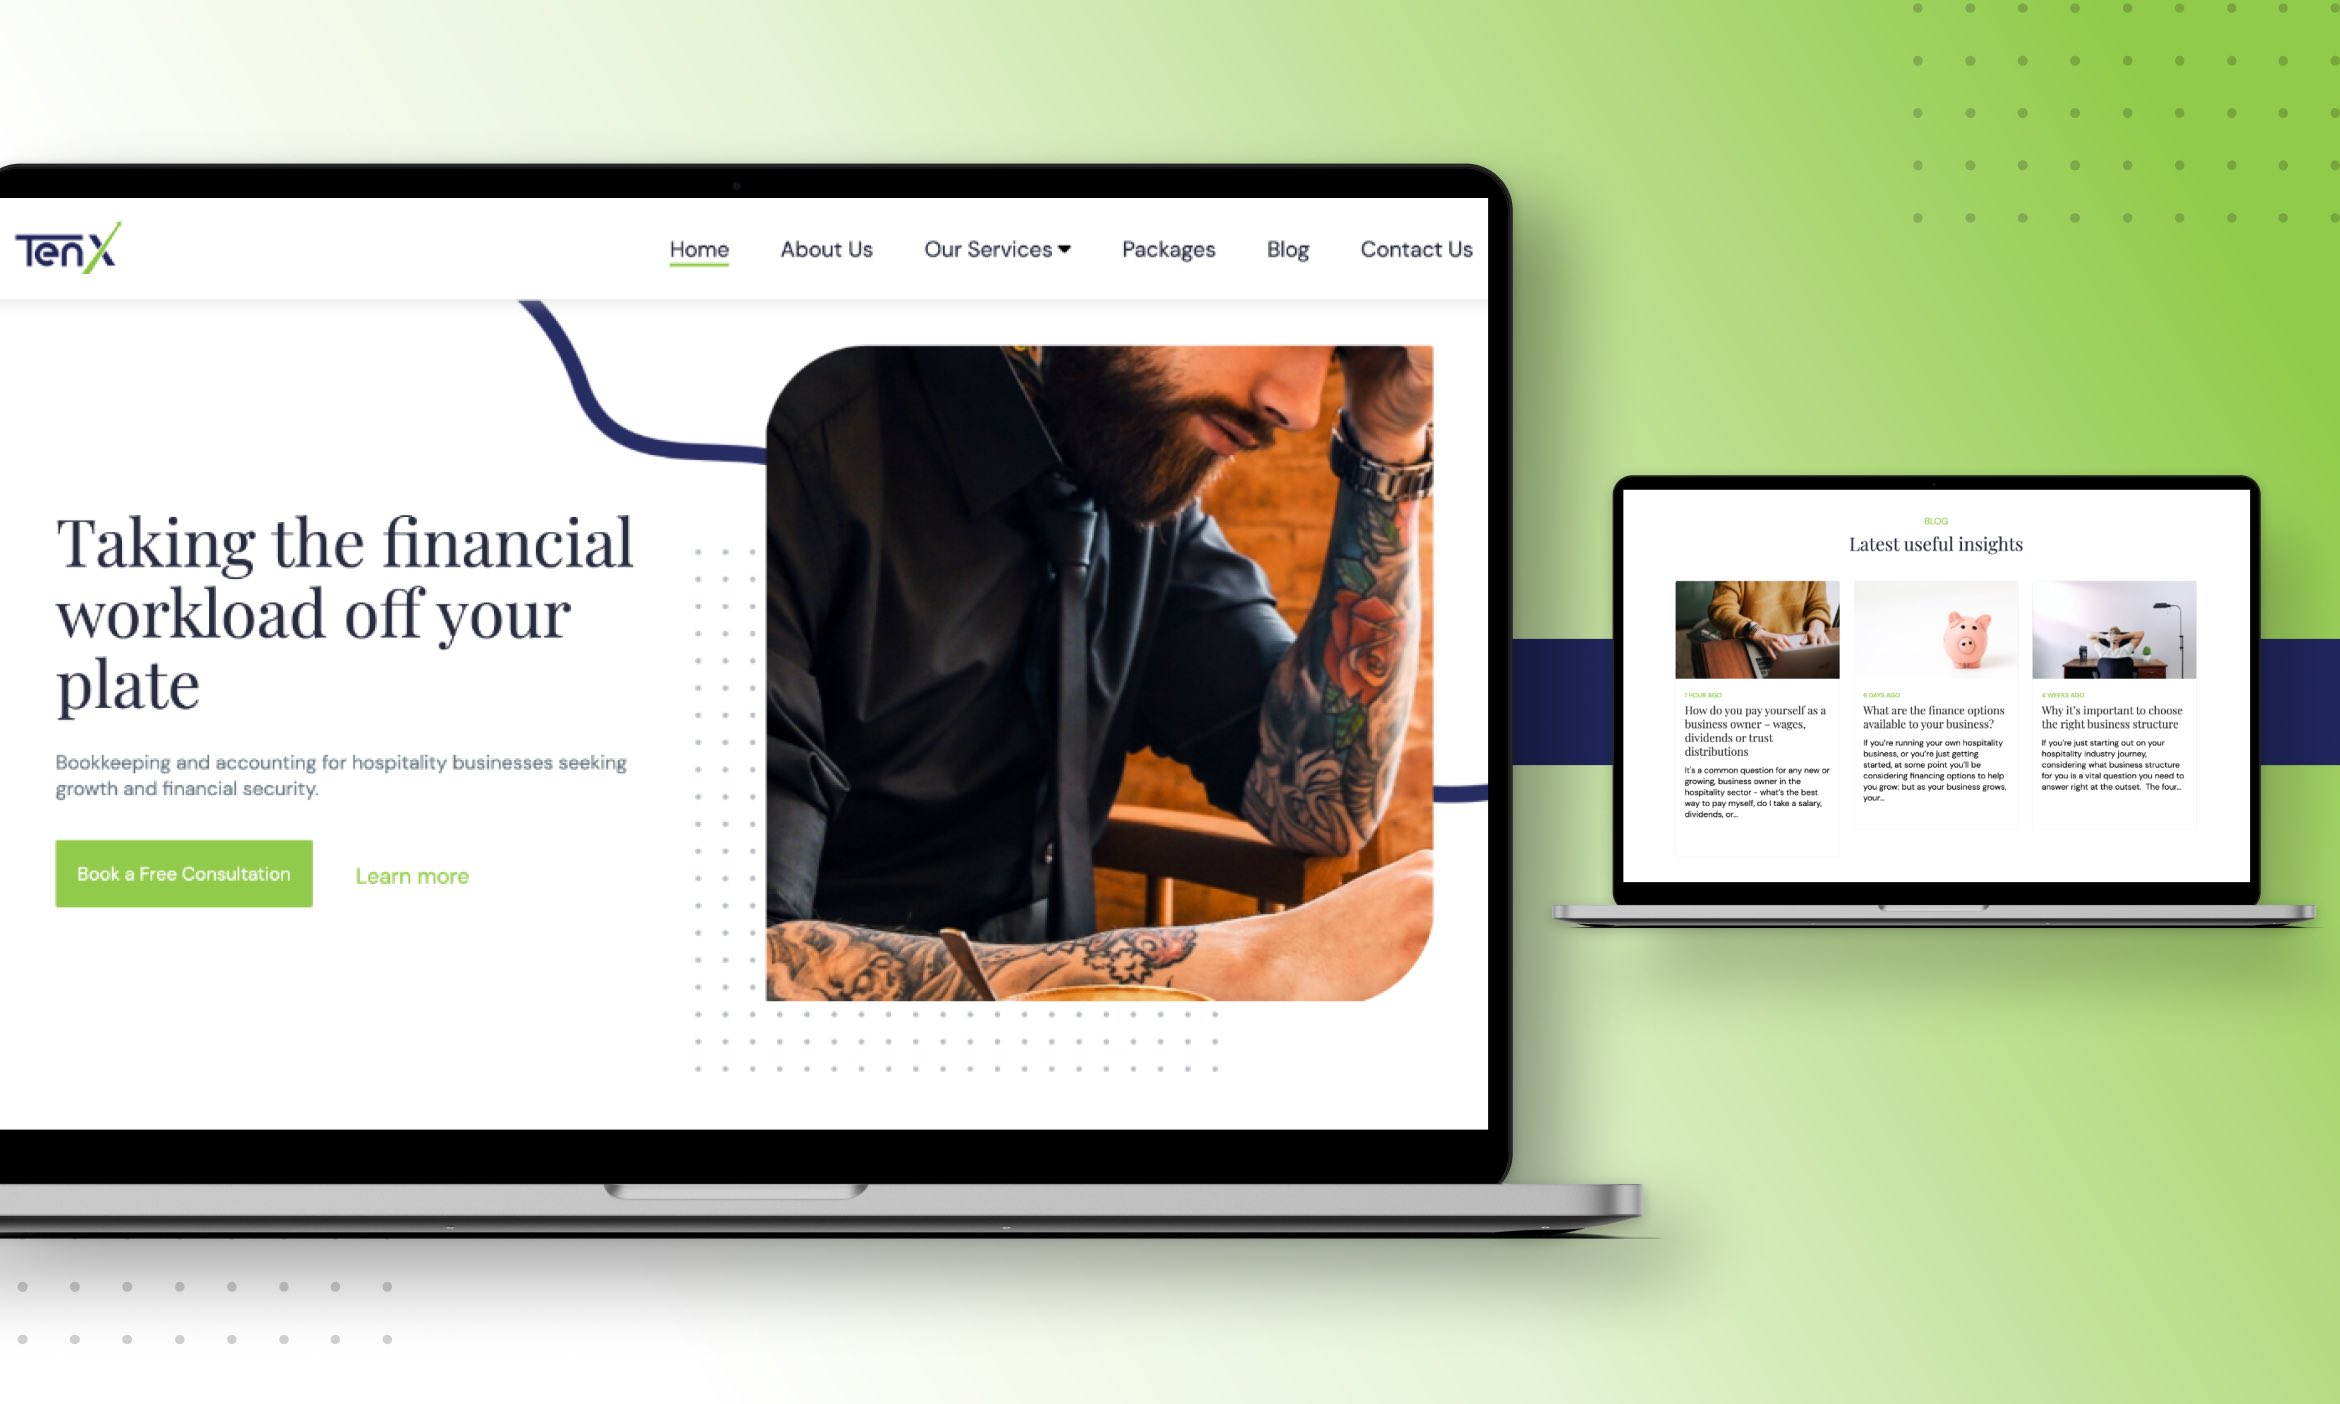 Ten X Advisors - Accounting and Bookkeeping Firm